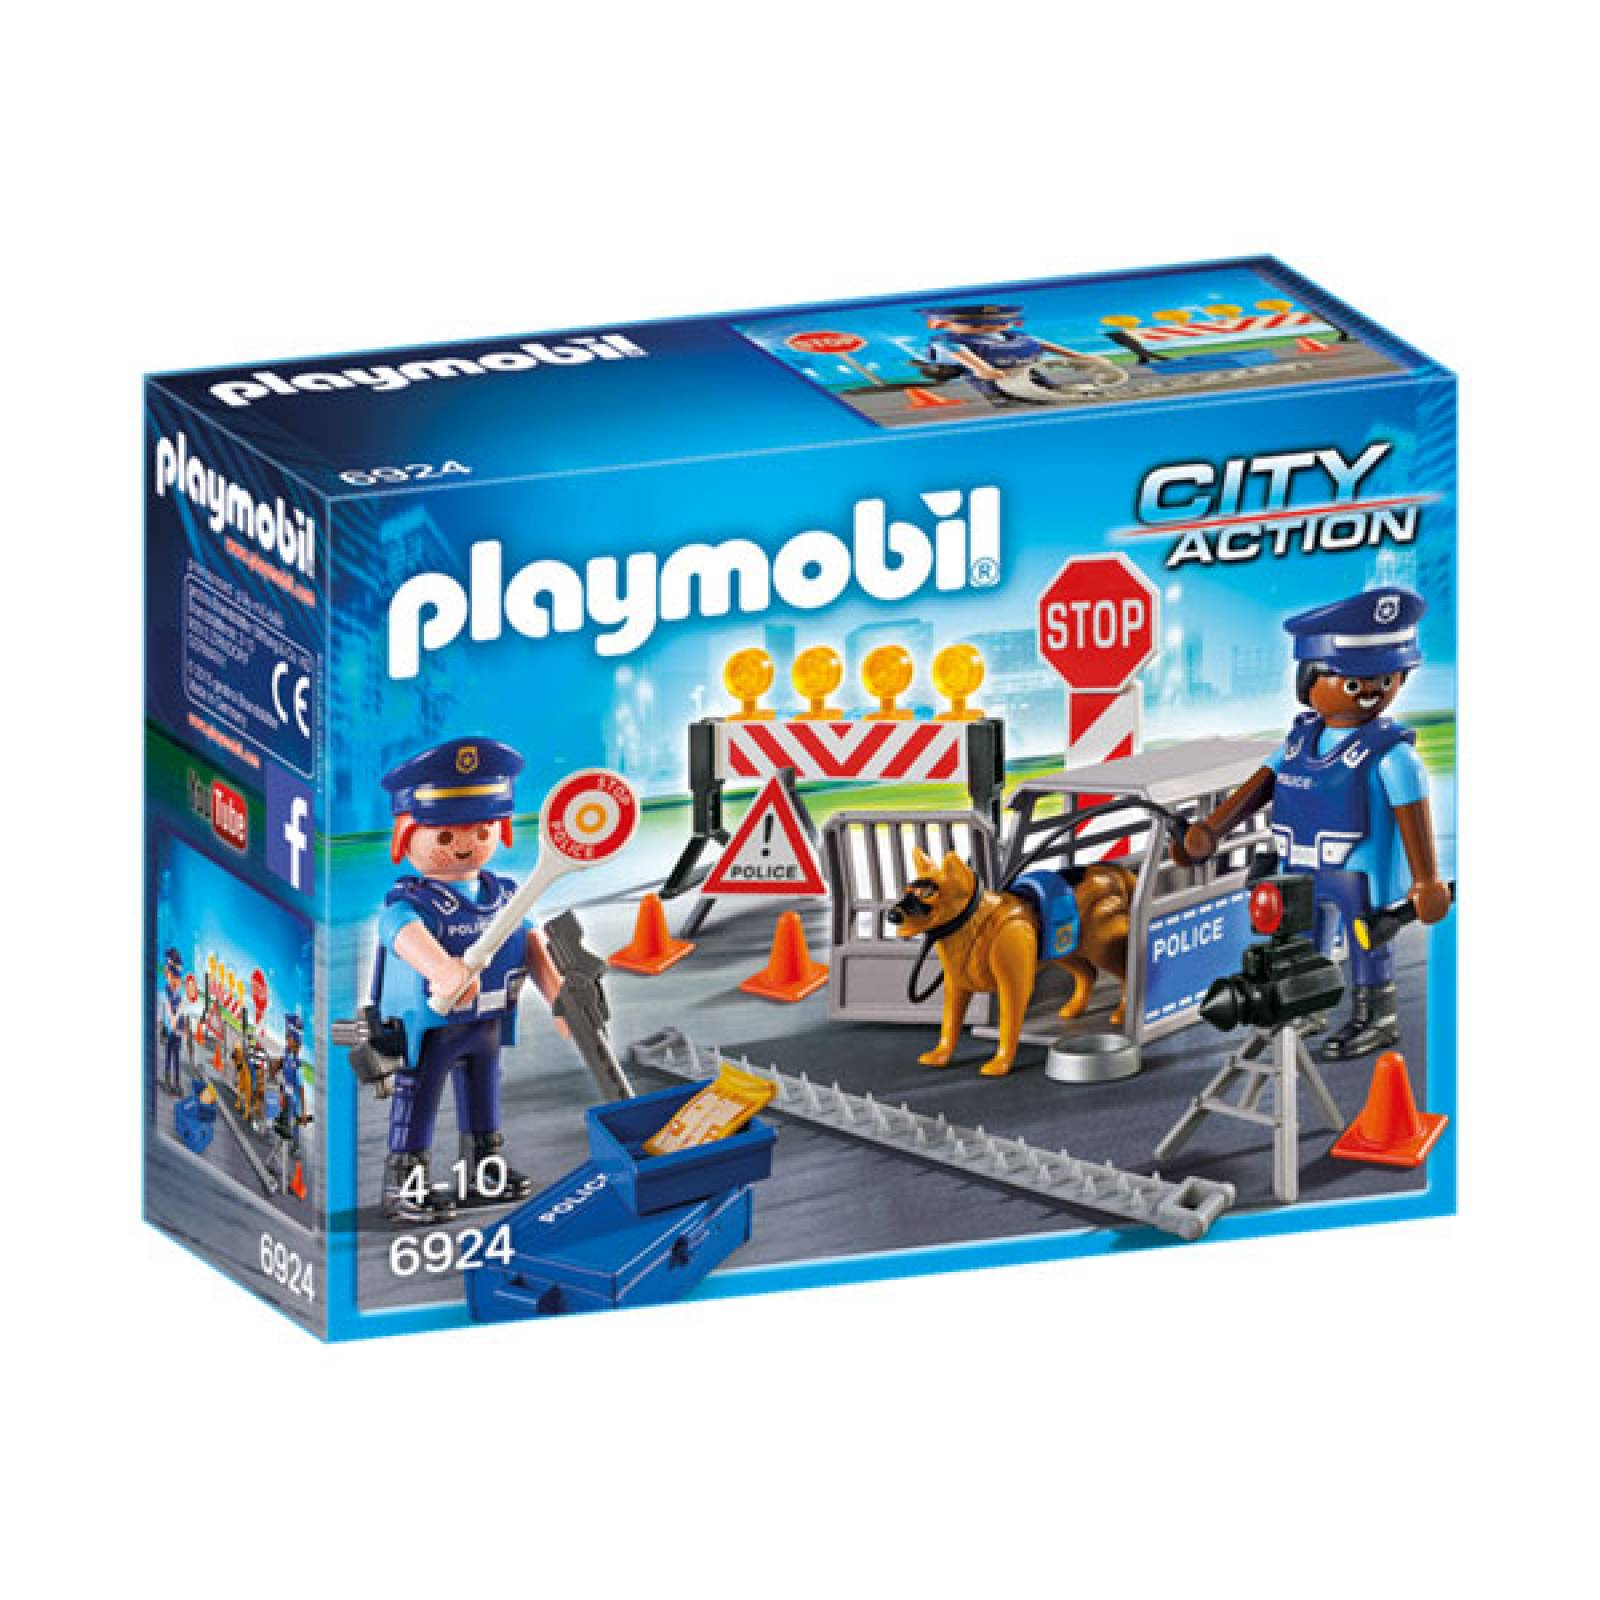 Police Roadblock City Action Playmobil 6924 thumbnails